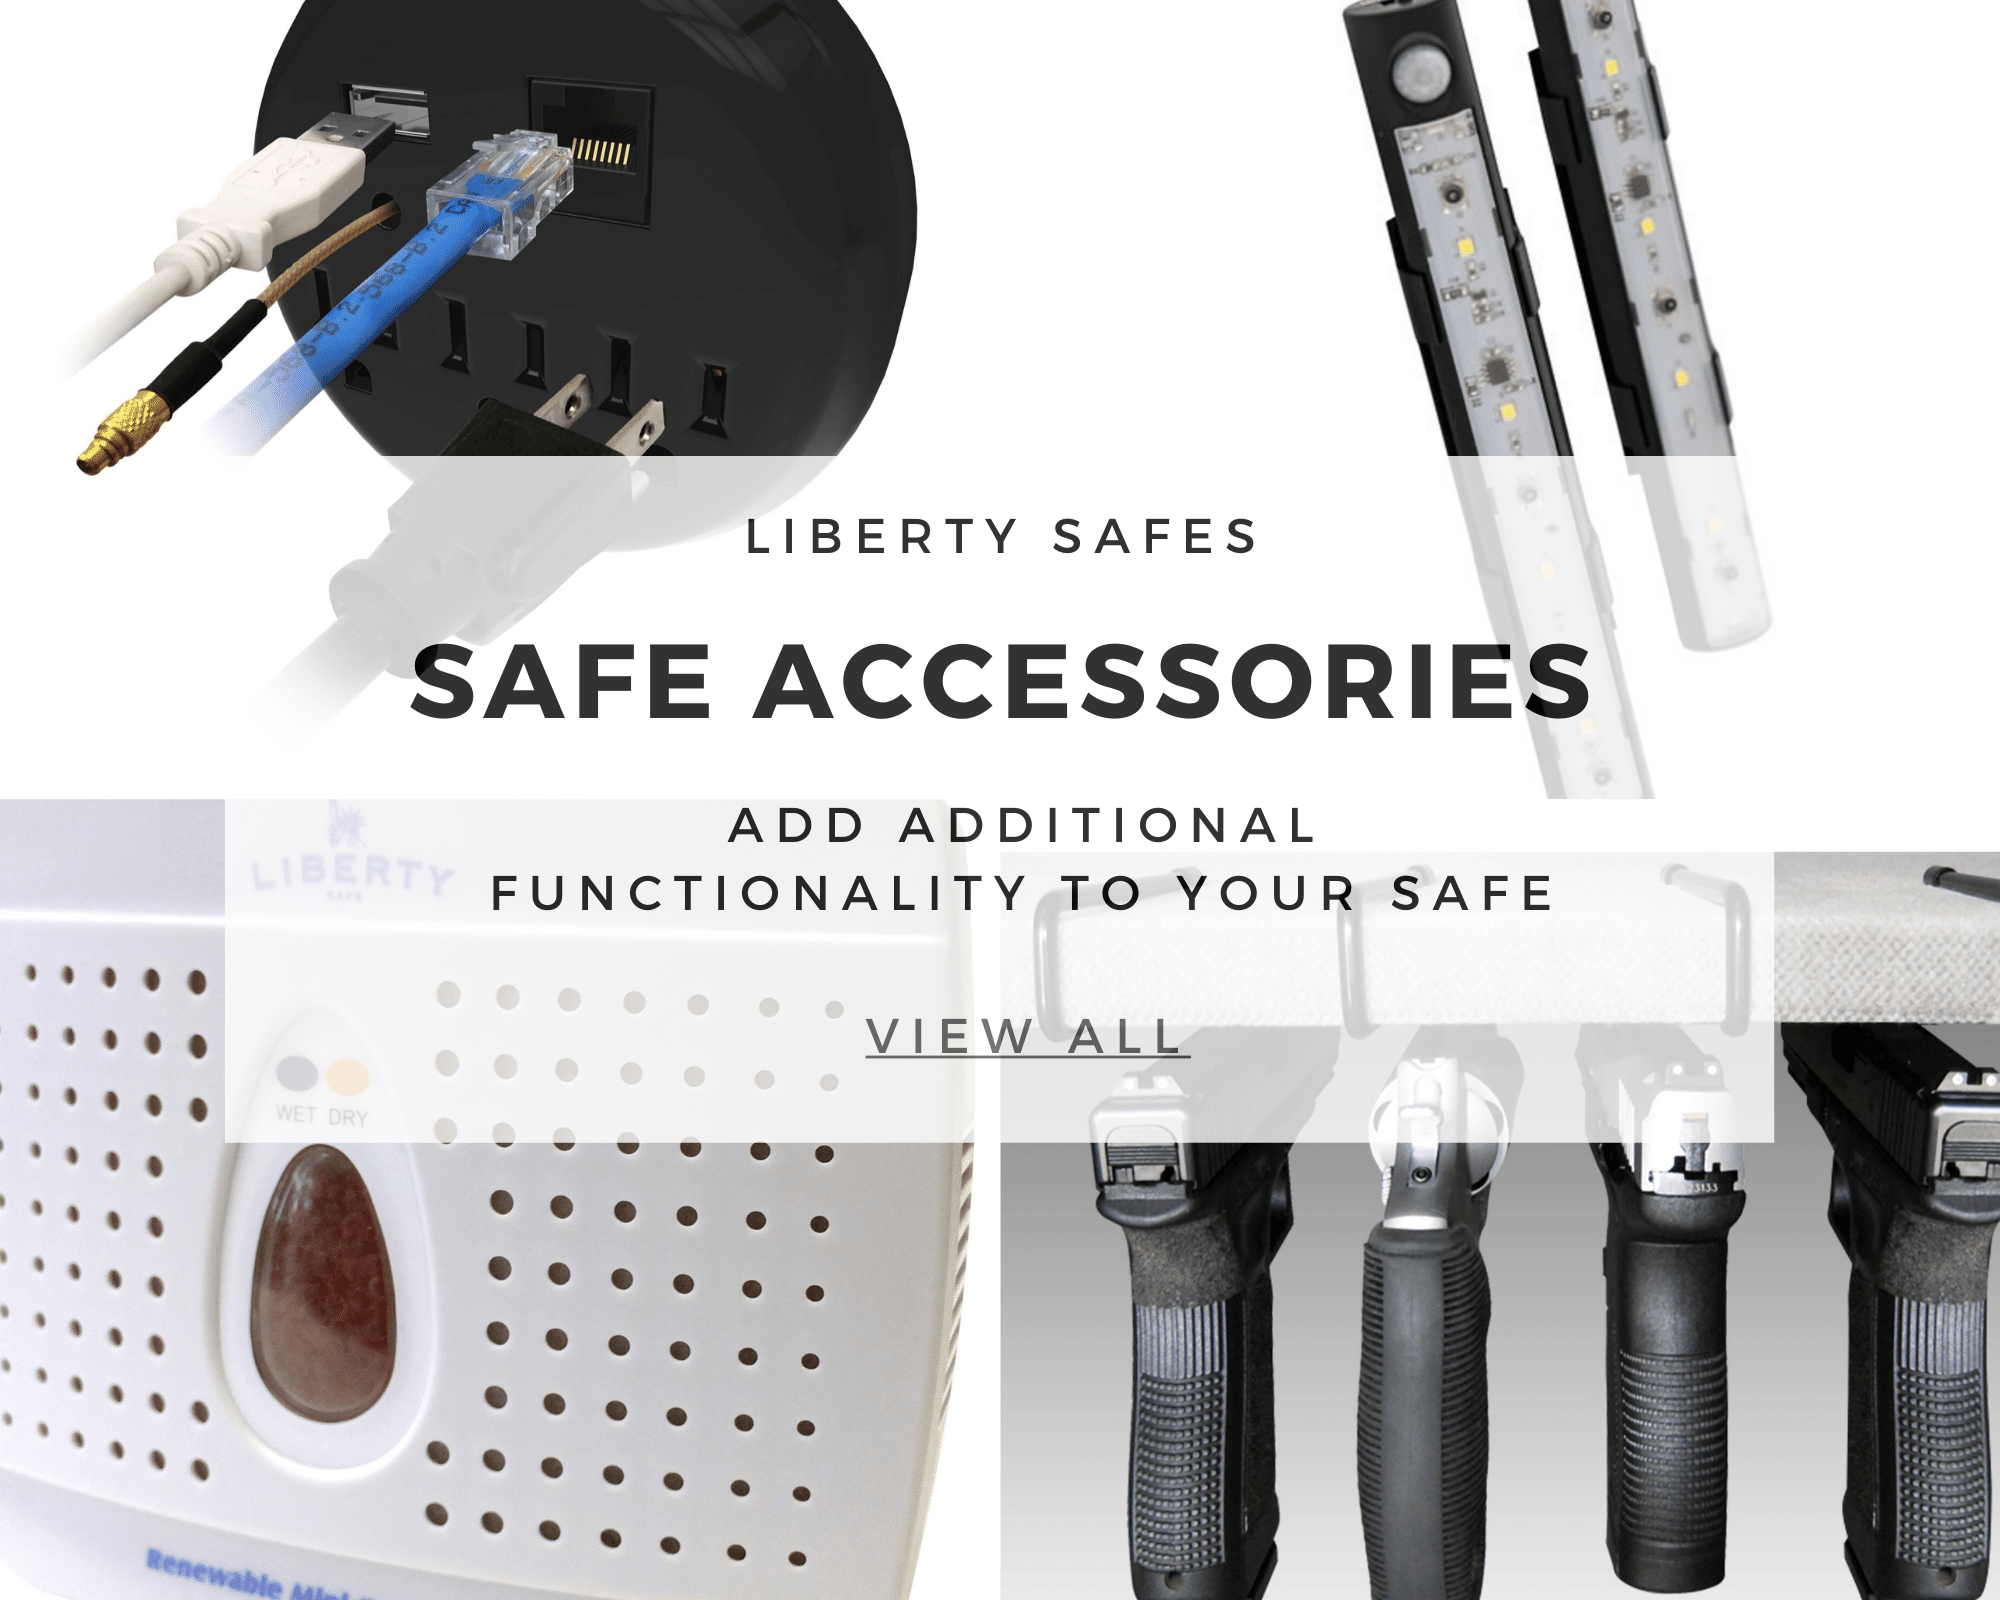 accessories for a safe, outlet, lights, handgun hangers, eva dry